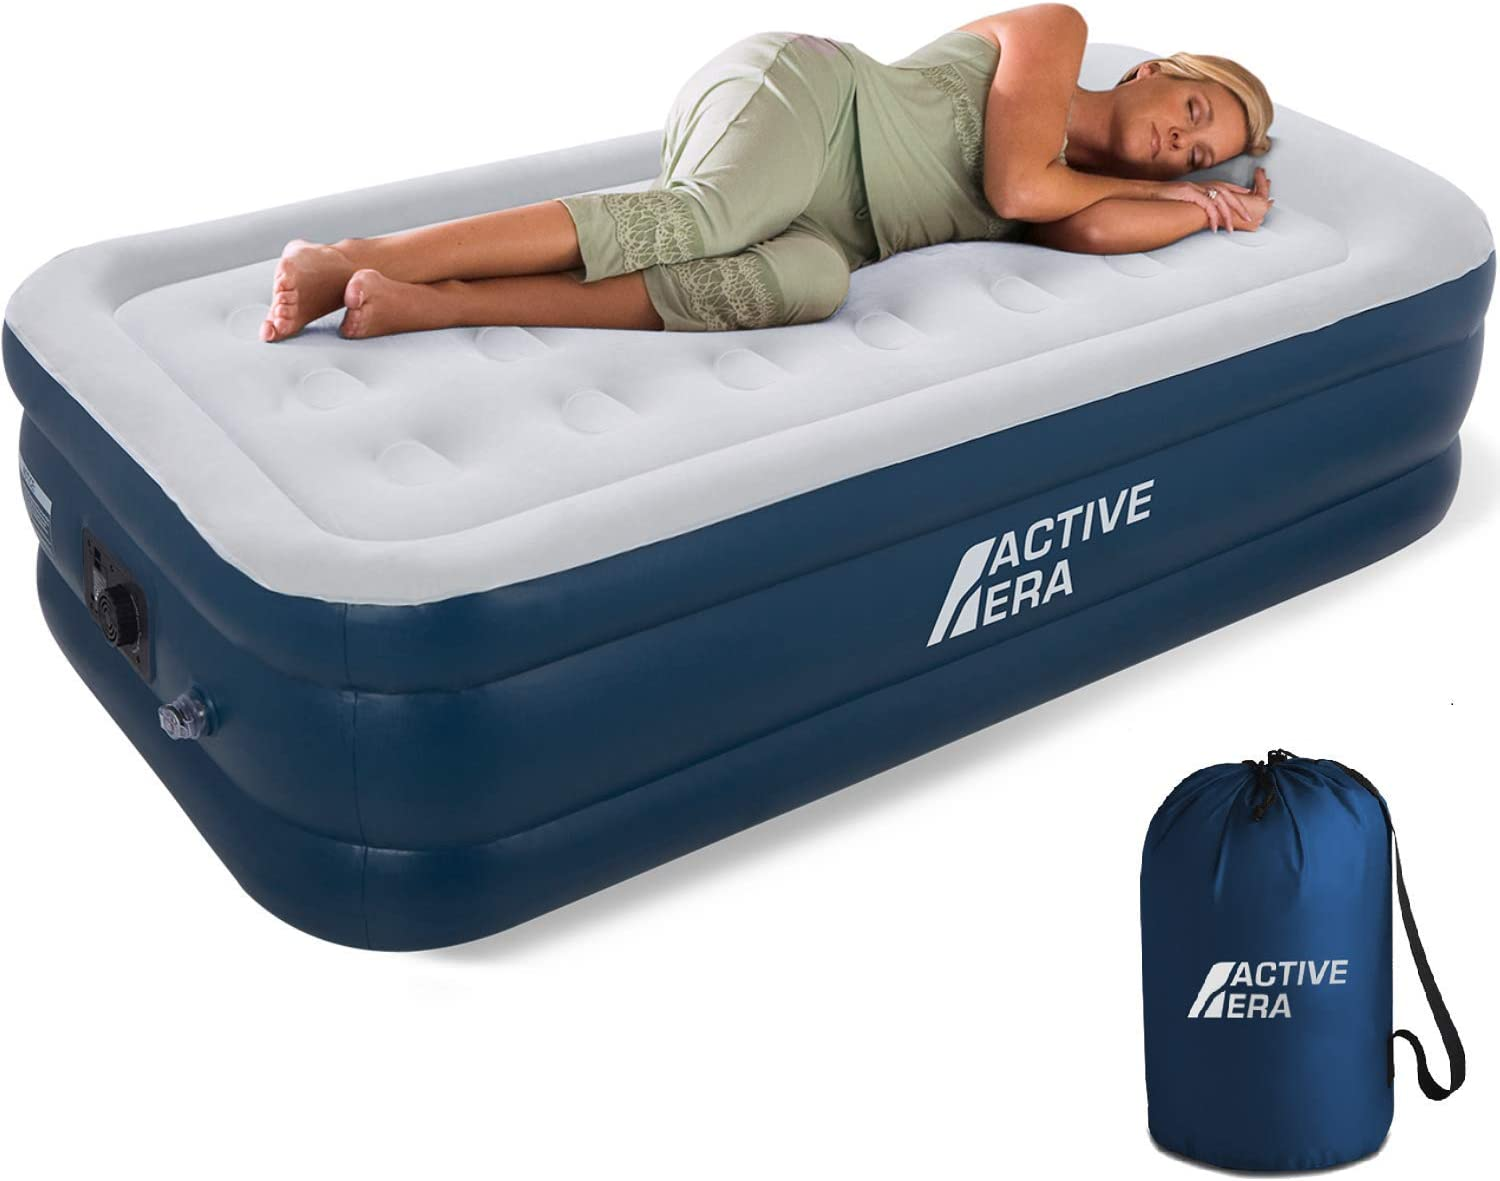 Best Air Mattress For Long Term Use With Maximum Comfort in 2020 6